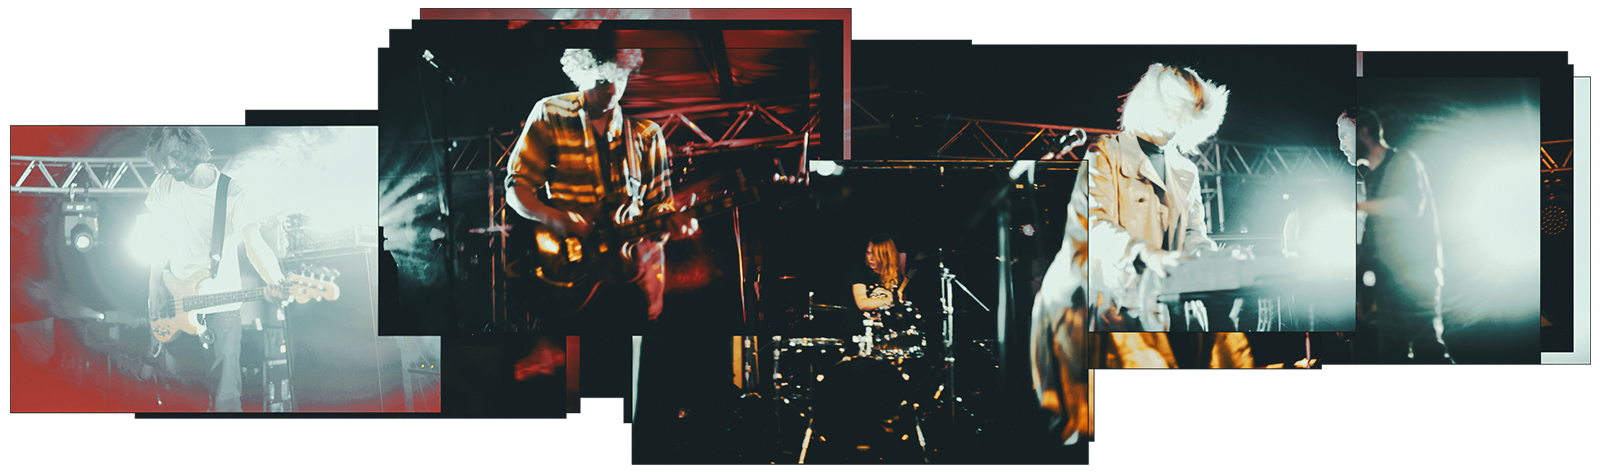 the_altered_hours_live_knockanstockan_06.png